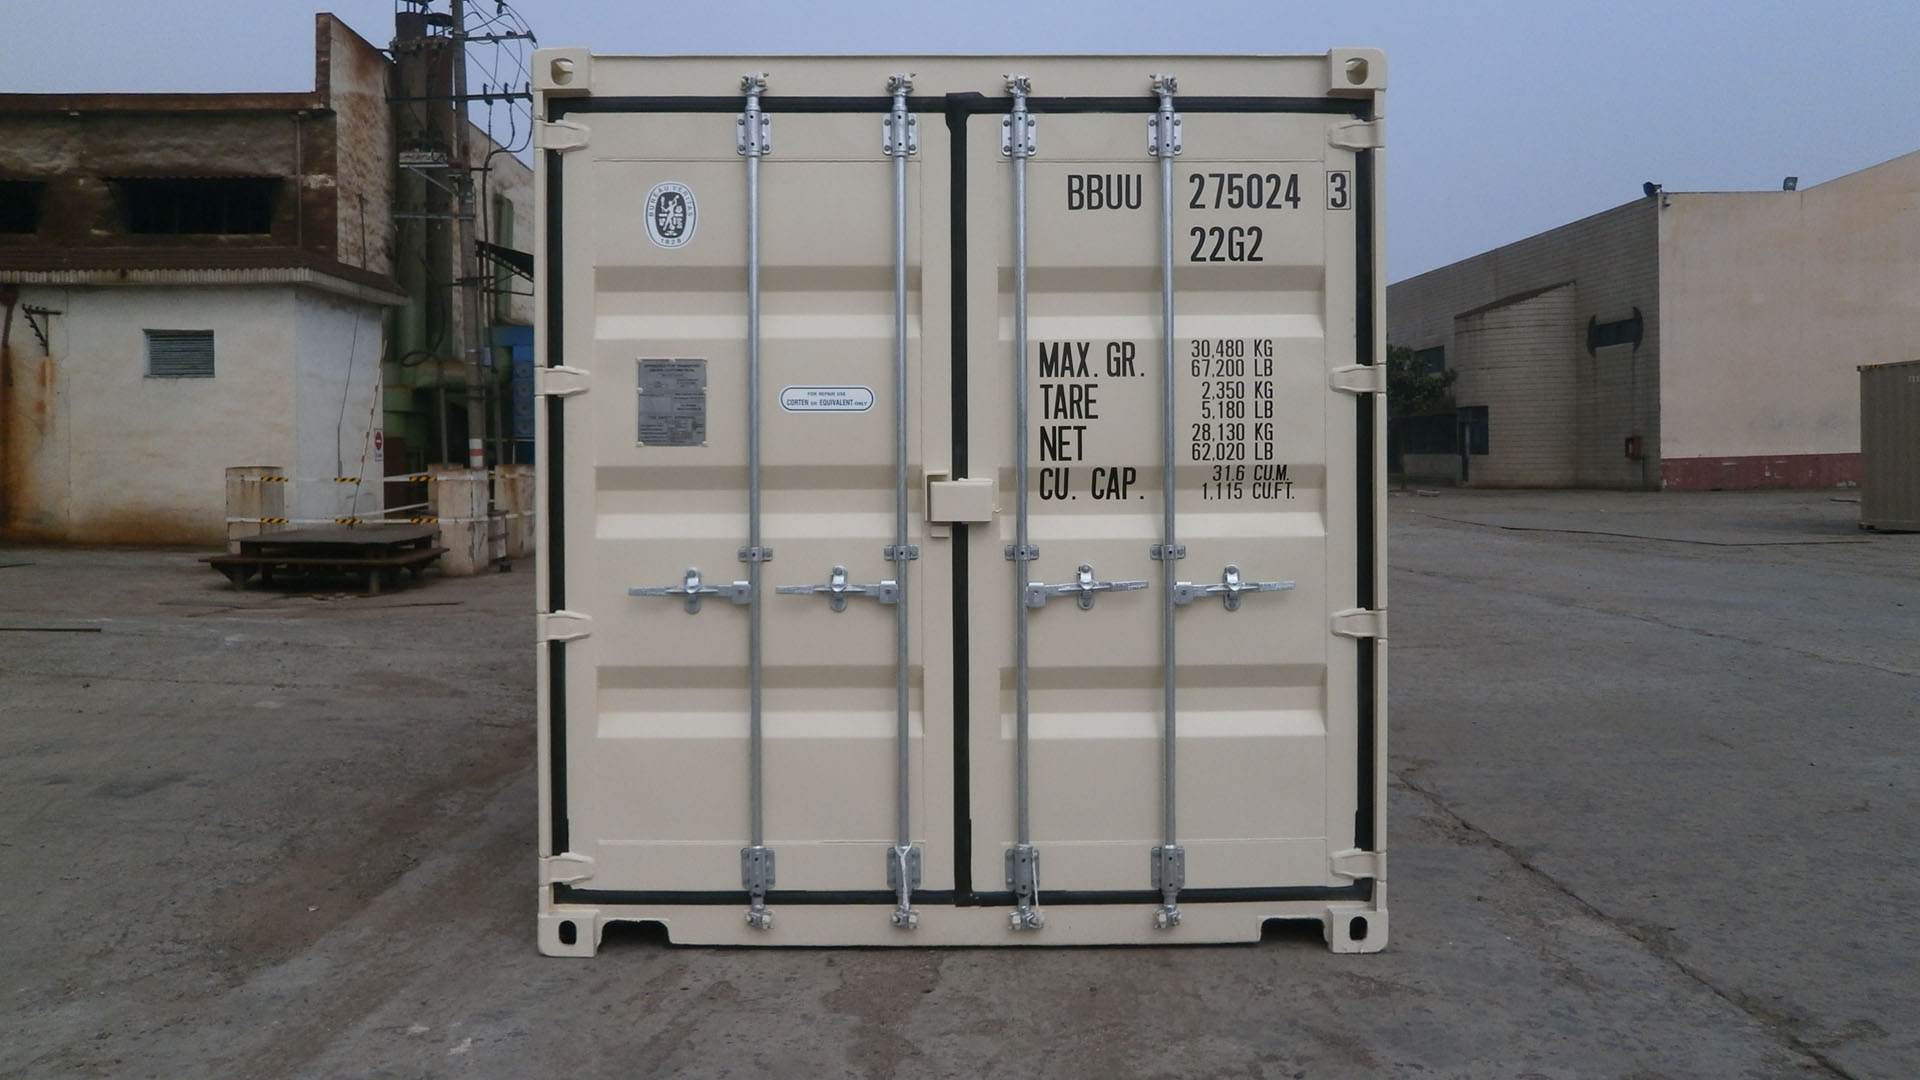 48l-x-86w-x-96h-storage-trailer-with-3-x-3w-x-80h